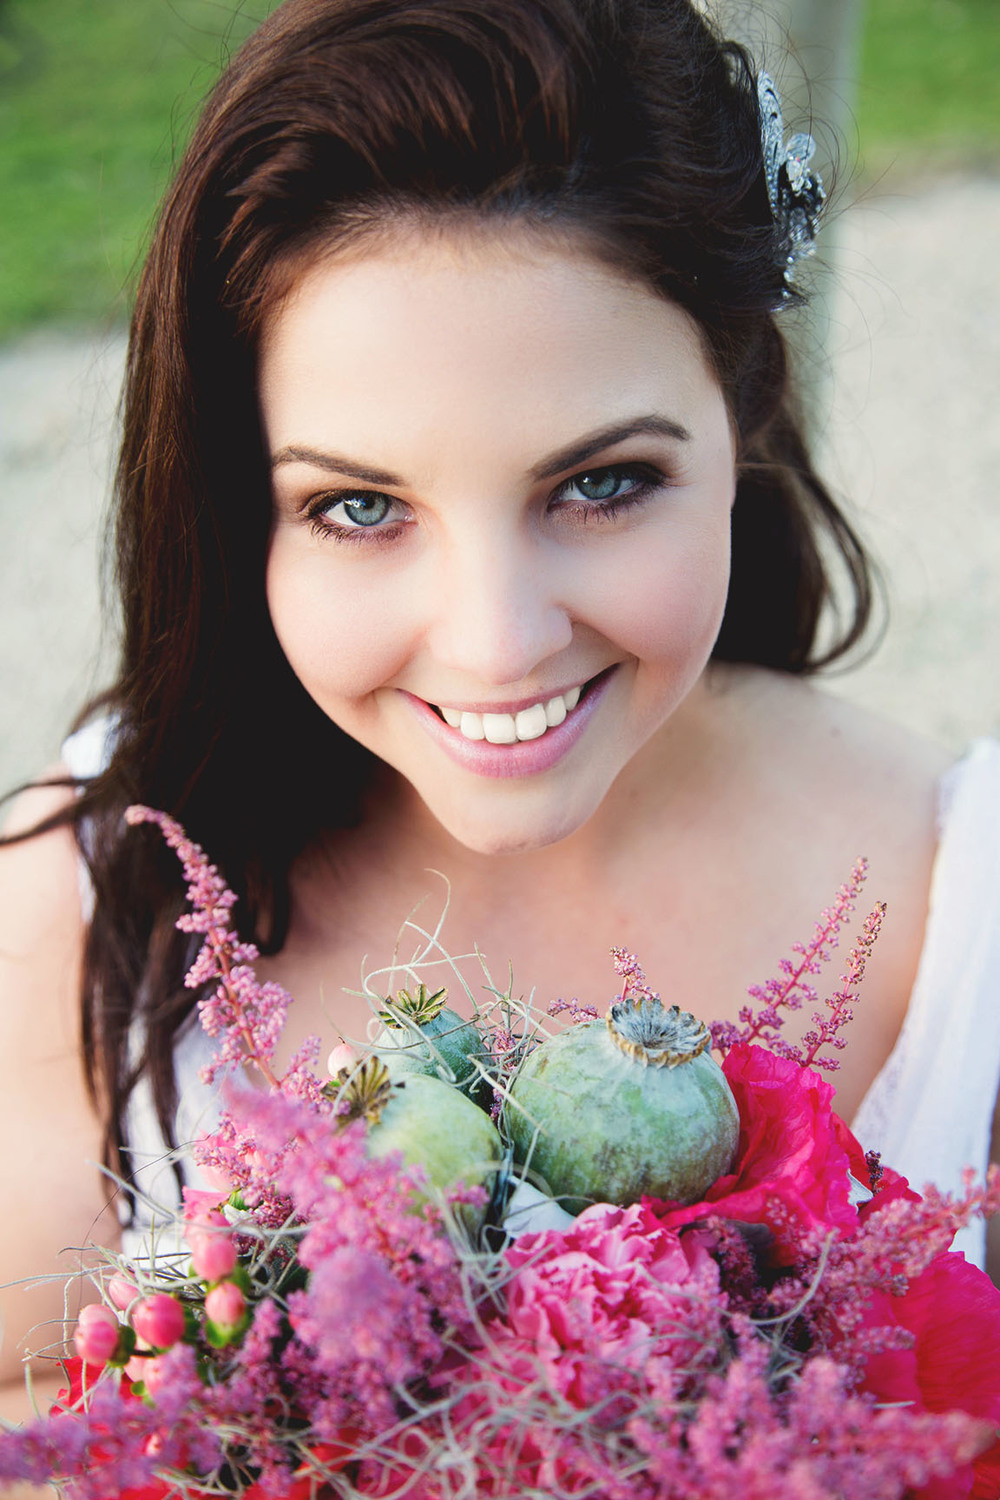 Model Rhiannon, Bridal Bouquet from Fiddlesticks Floral Design, Hair & Makeup By I-blush